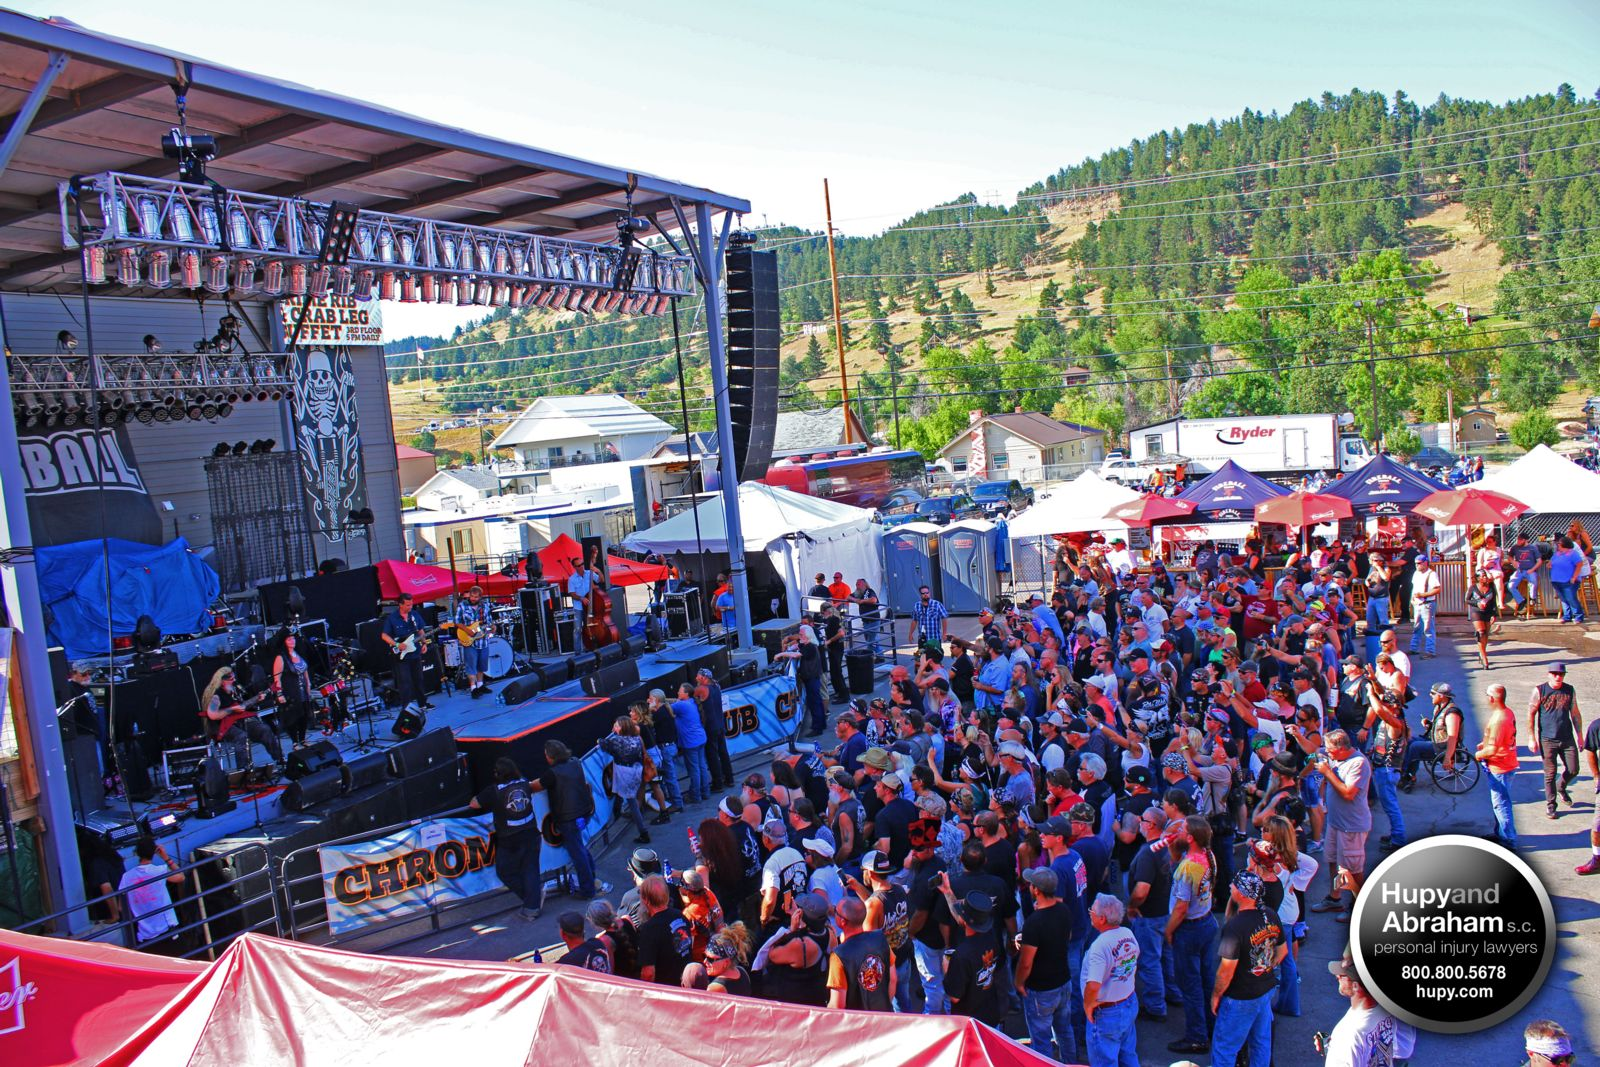 Large crowd of people standing in front of event stage at Sturgis Motorcycle Rally